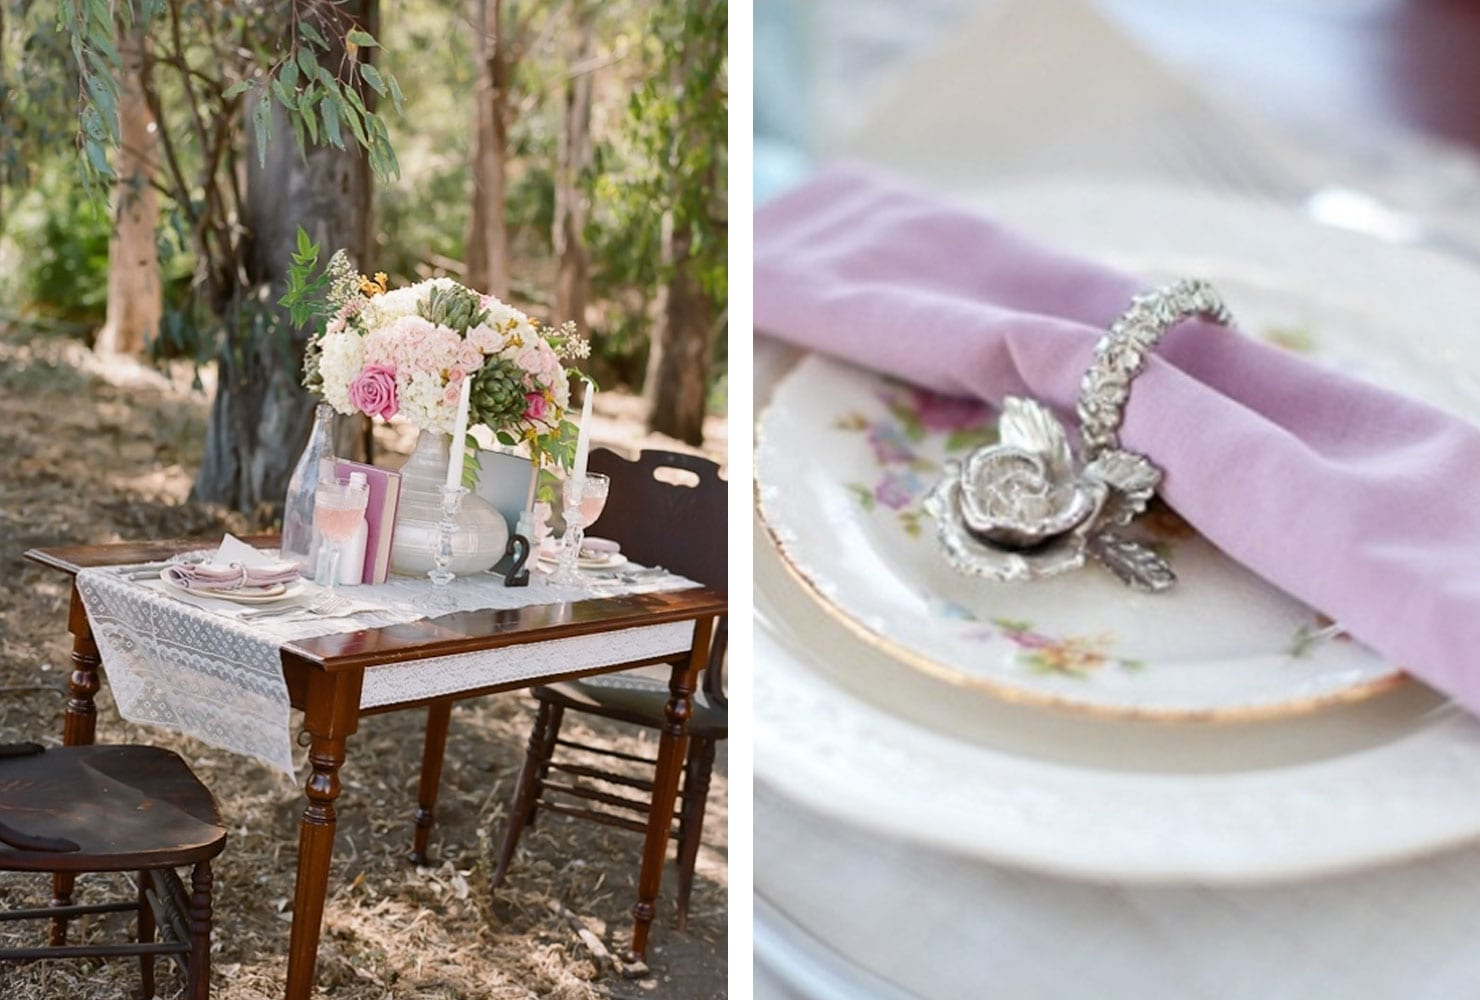 sweetheart table ideas for every season shutterfly enchanted rustic accent your focus runner wooden with white and lilac floral accents target patio coffee green marble top desk